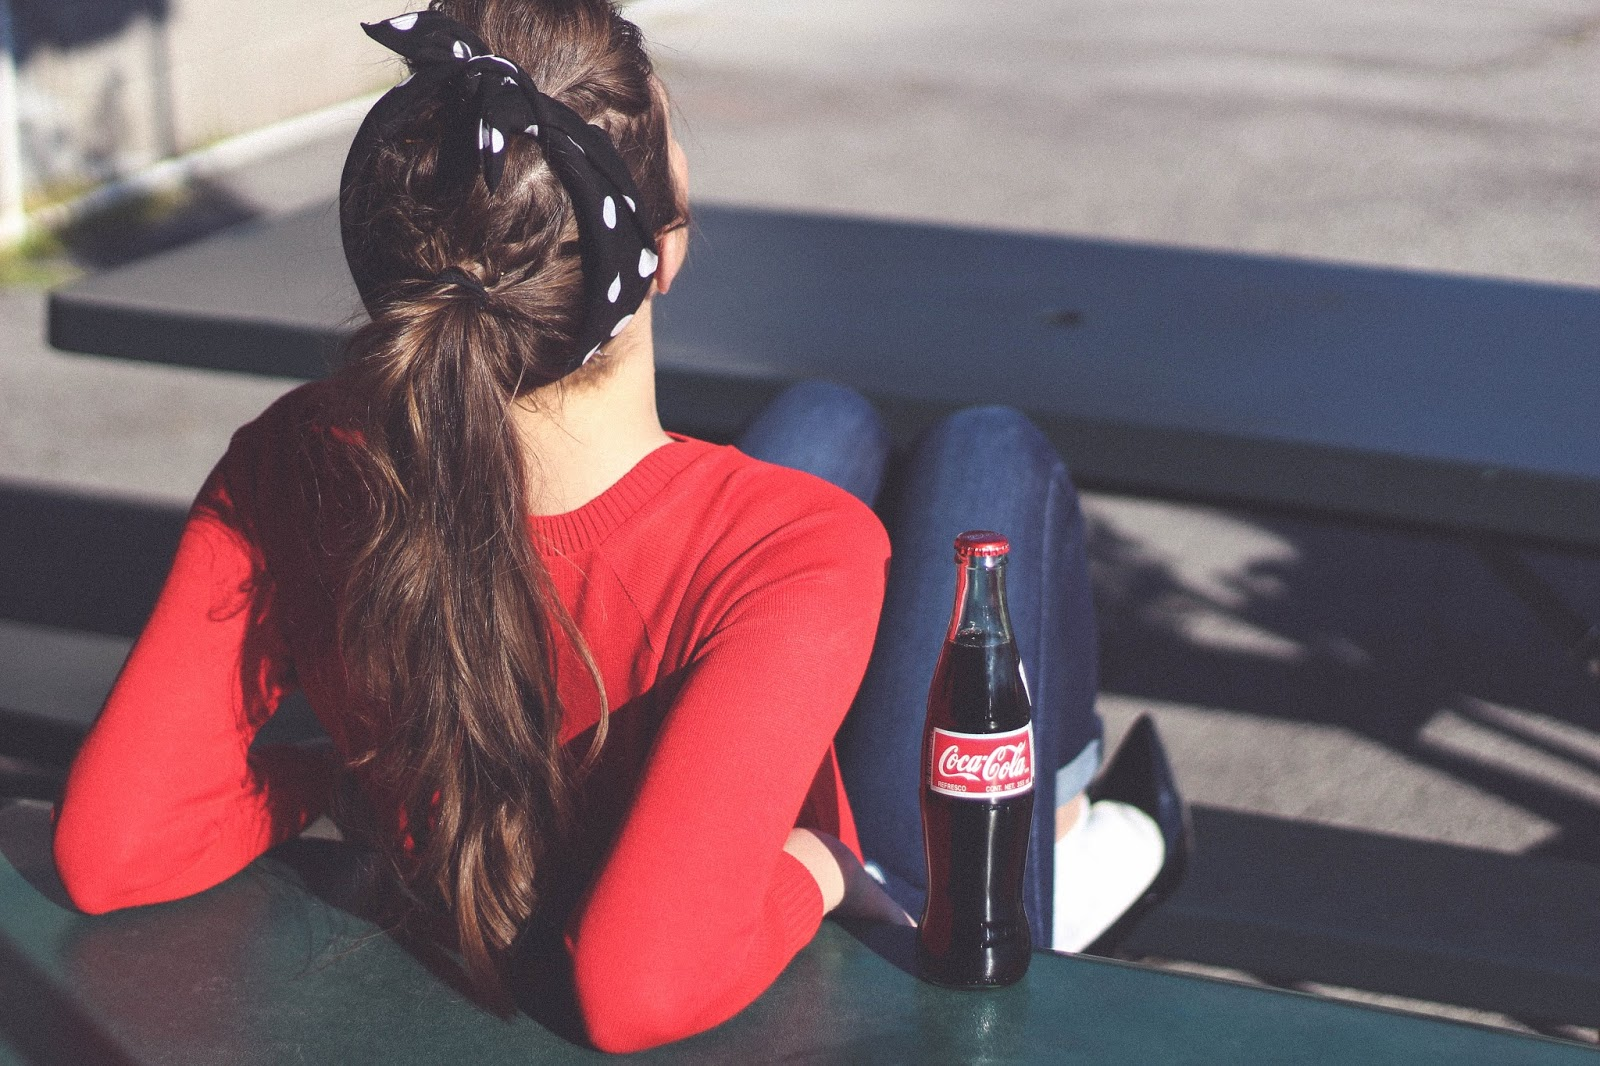 50's style, retro, coca cola, vintage outfit, gap high waist jeans, socks and heel, bandana, 50's style hair, drive in, fashion blogger